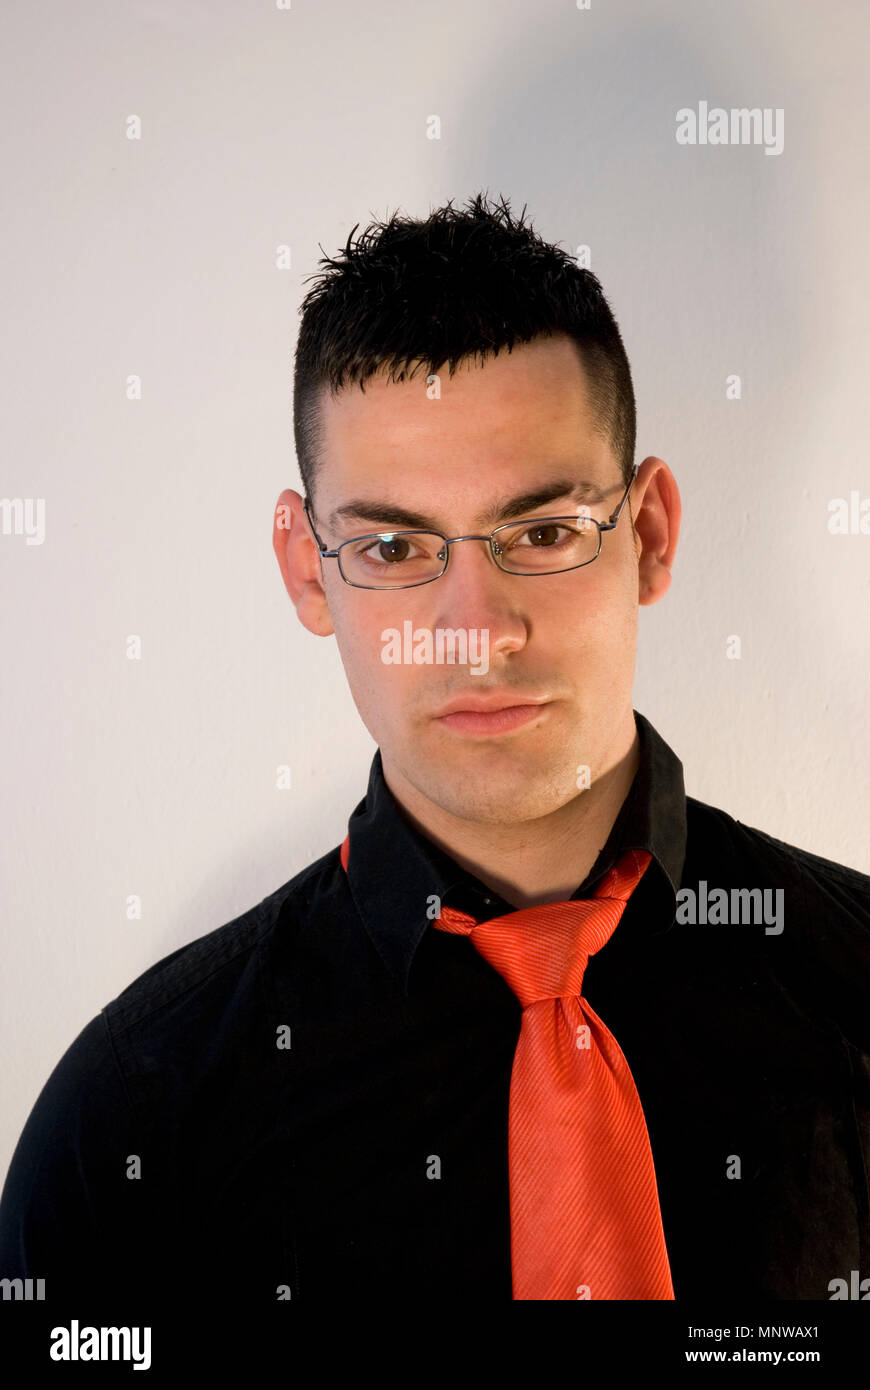 748131b04a00 Young man wearing black shirt, red tie and spectacles, looking at the  camera.